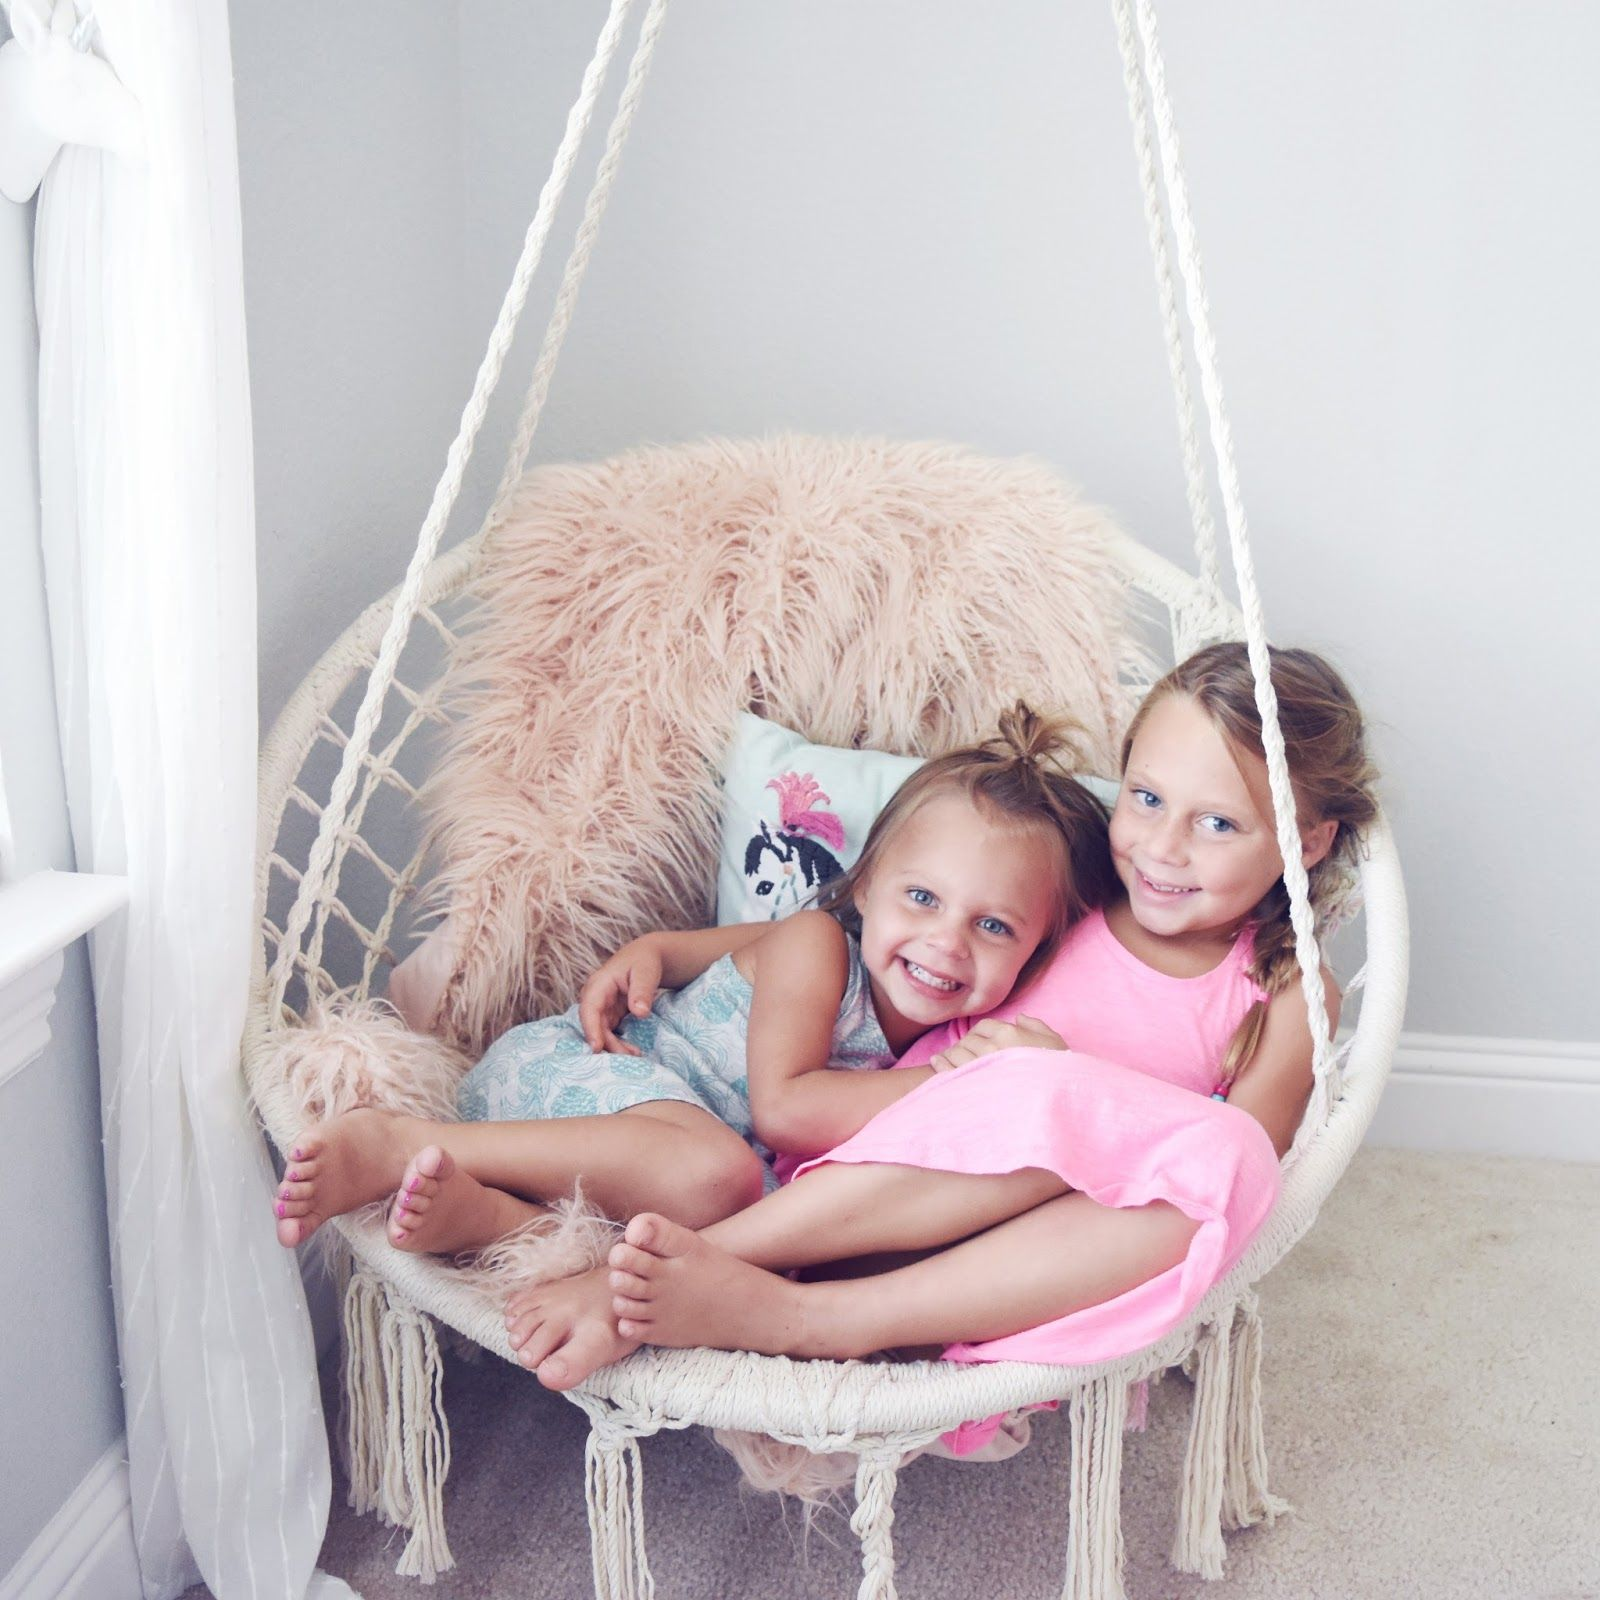 Pillow Thought Swinging Chair Kids Hanging Chair Room Swing